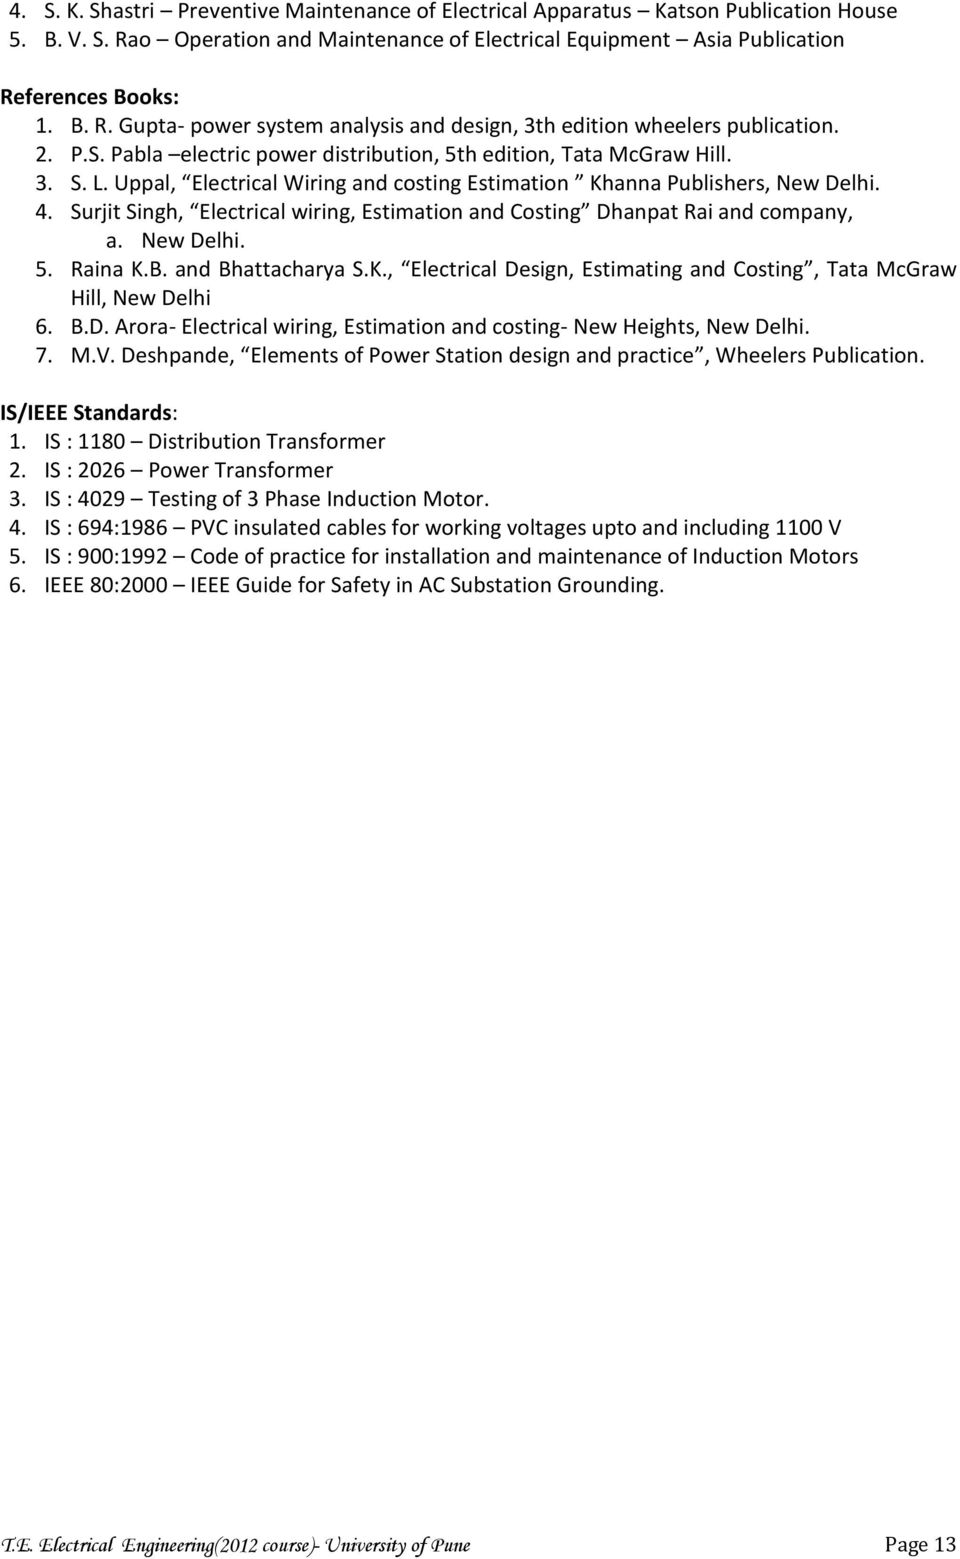 medium resolution of surjit singh electrical wiring estimation and costing dhanpat rai and company a